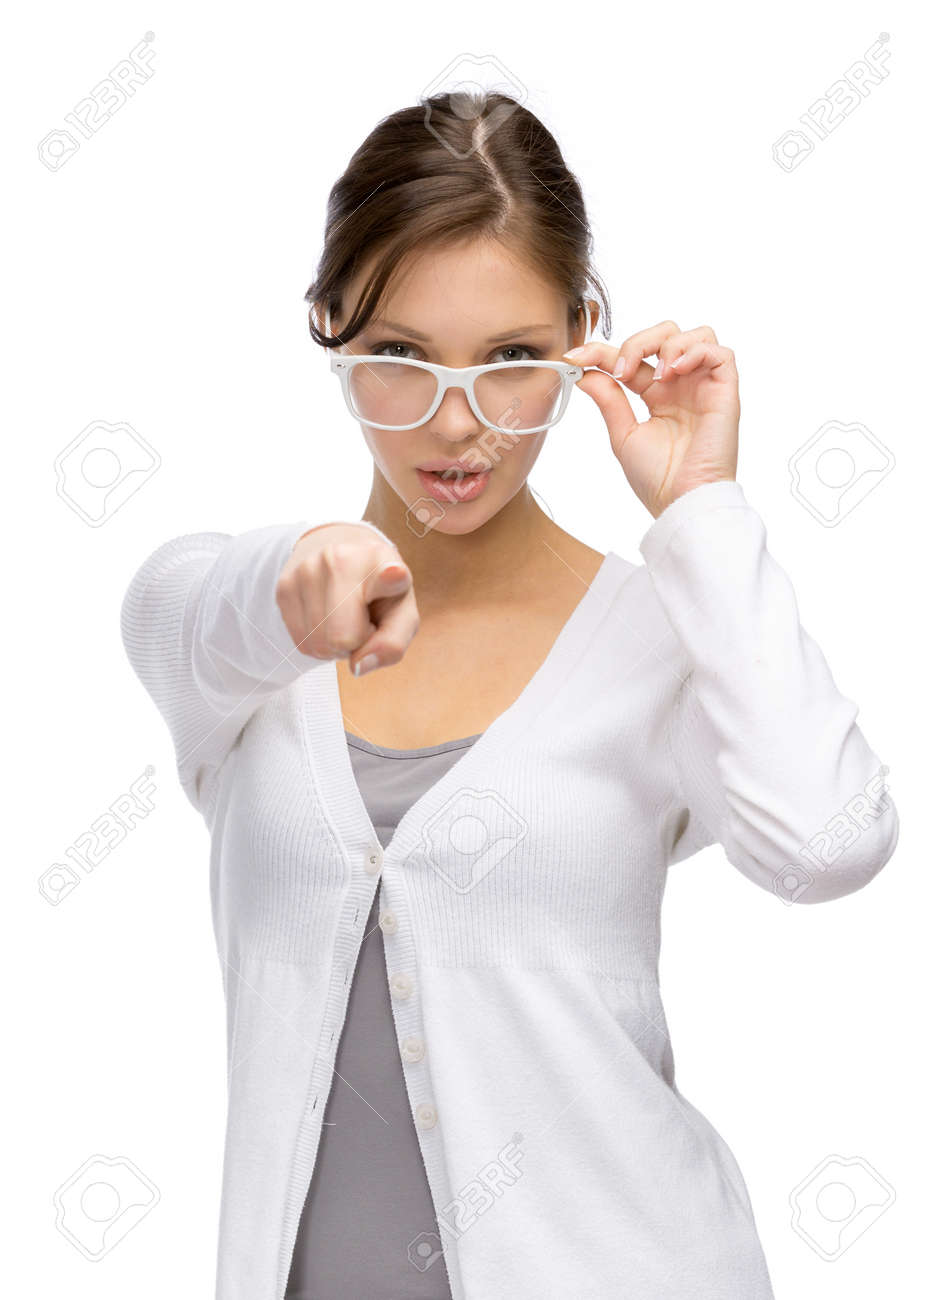 half length portrait of business woman in white frame glasses who pointing hand gestures